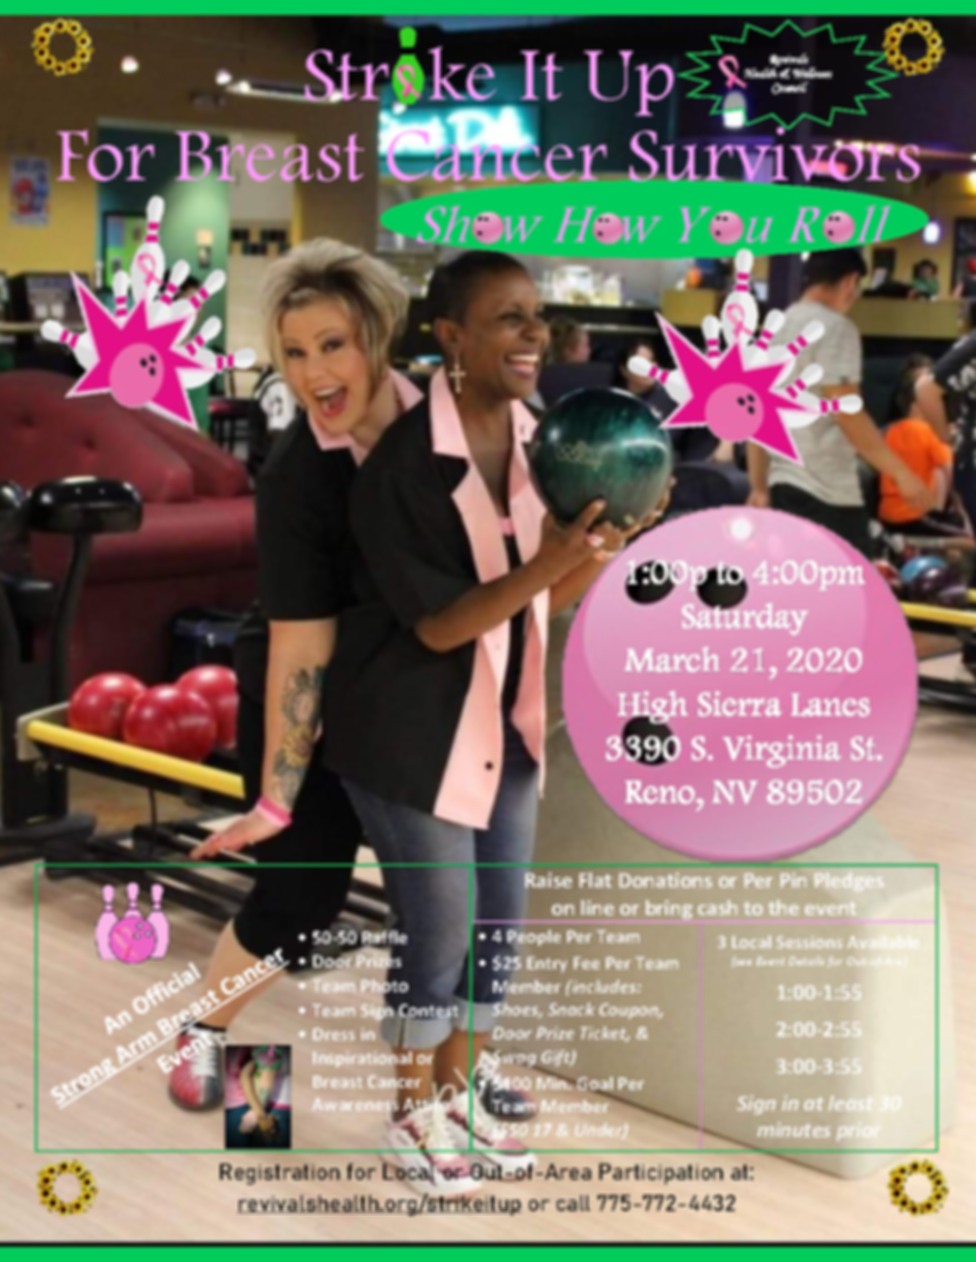 Strike It Up For Breast Cancer Survivors